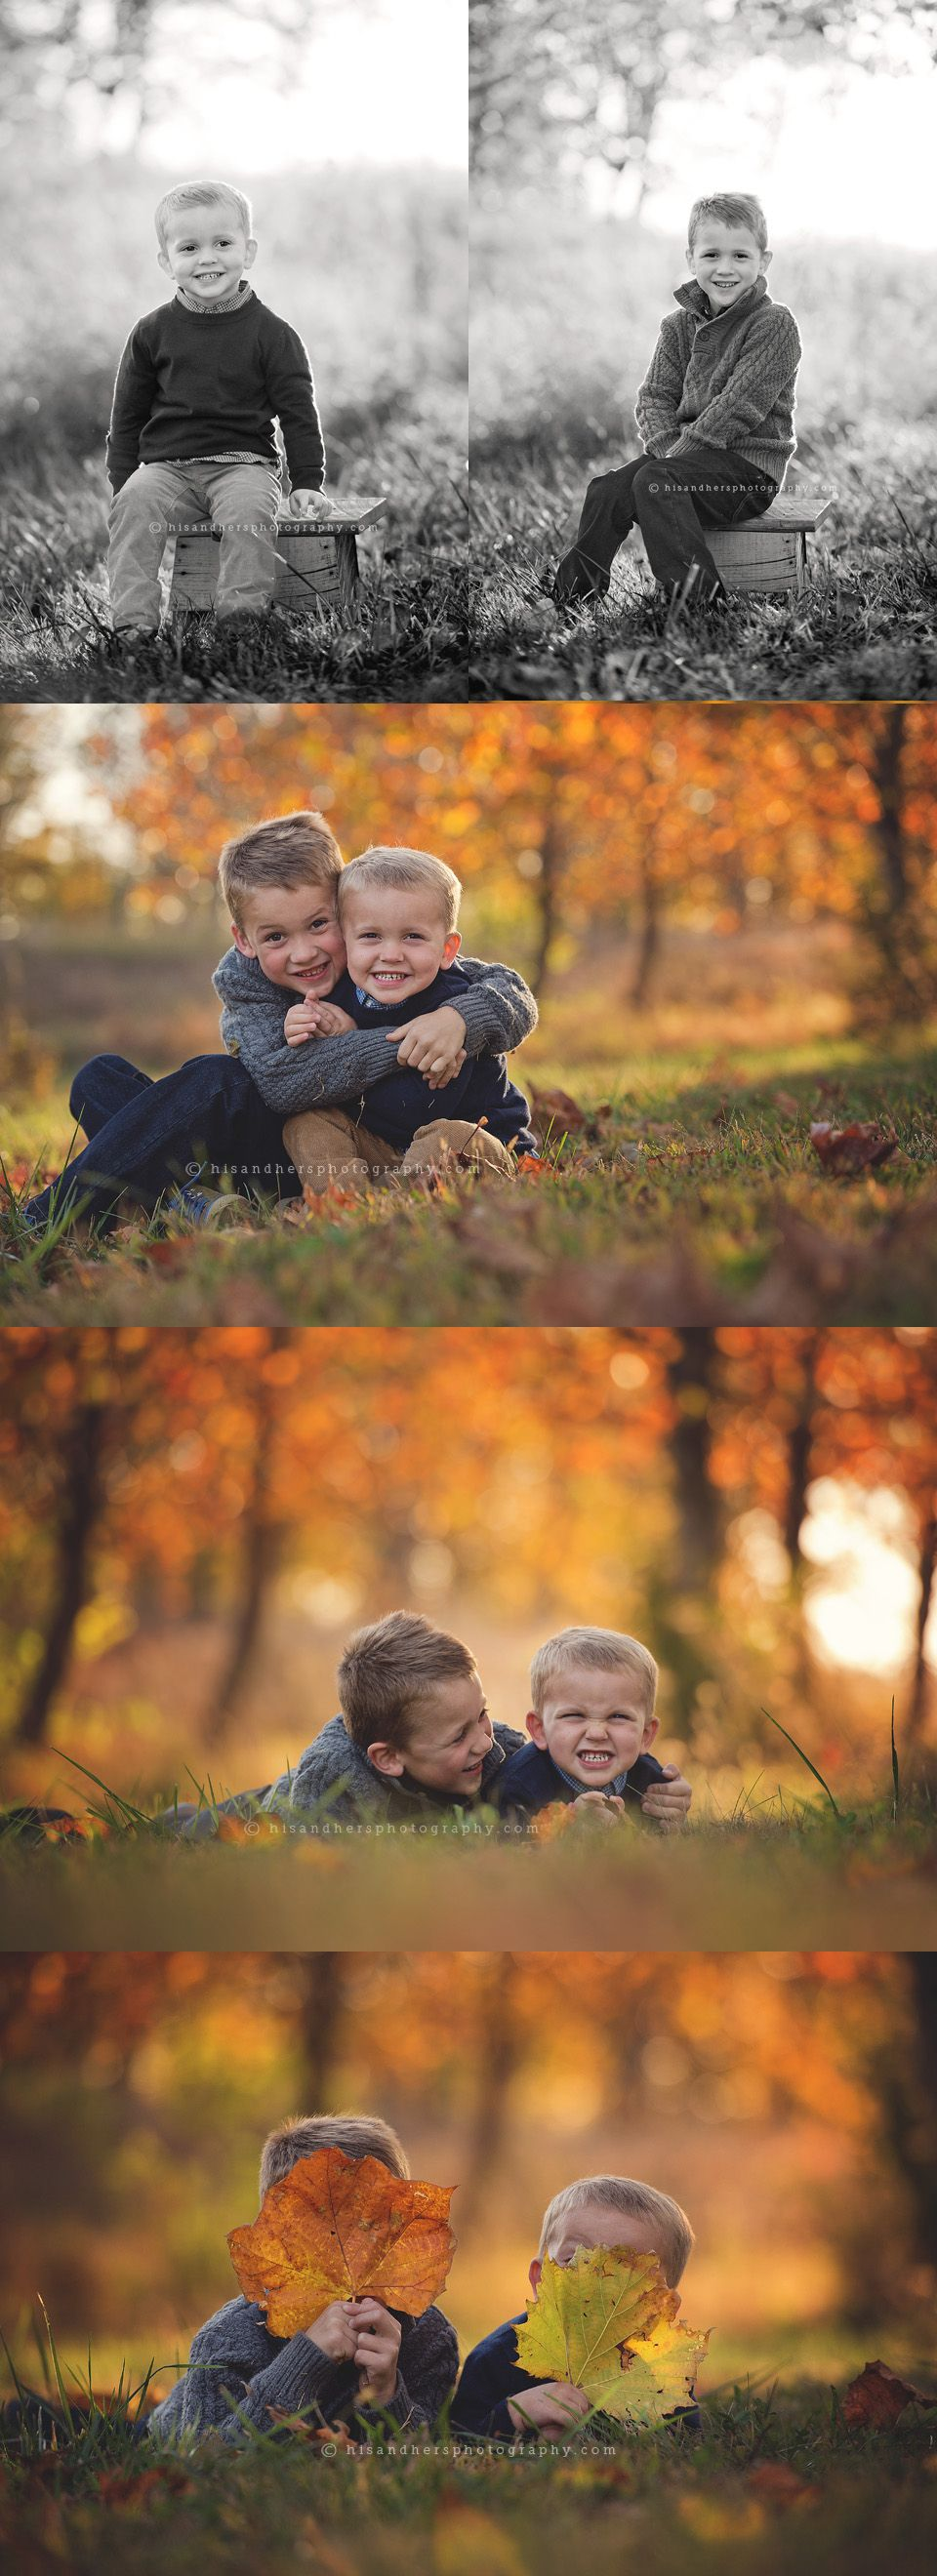 Child | Nicholas + Caden, ages 6 and 3